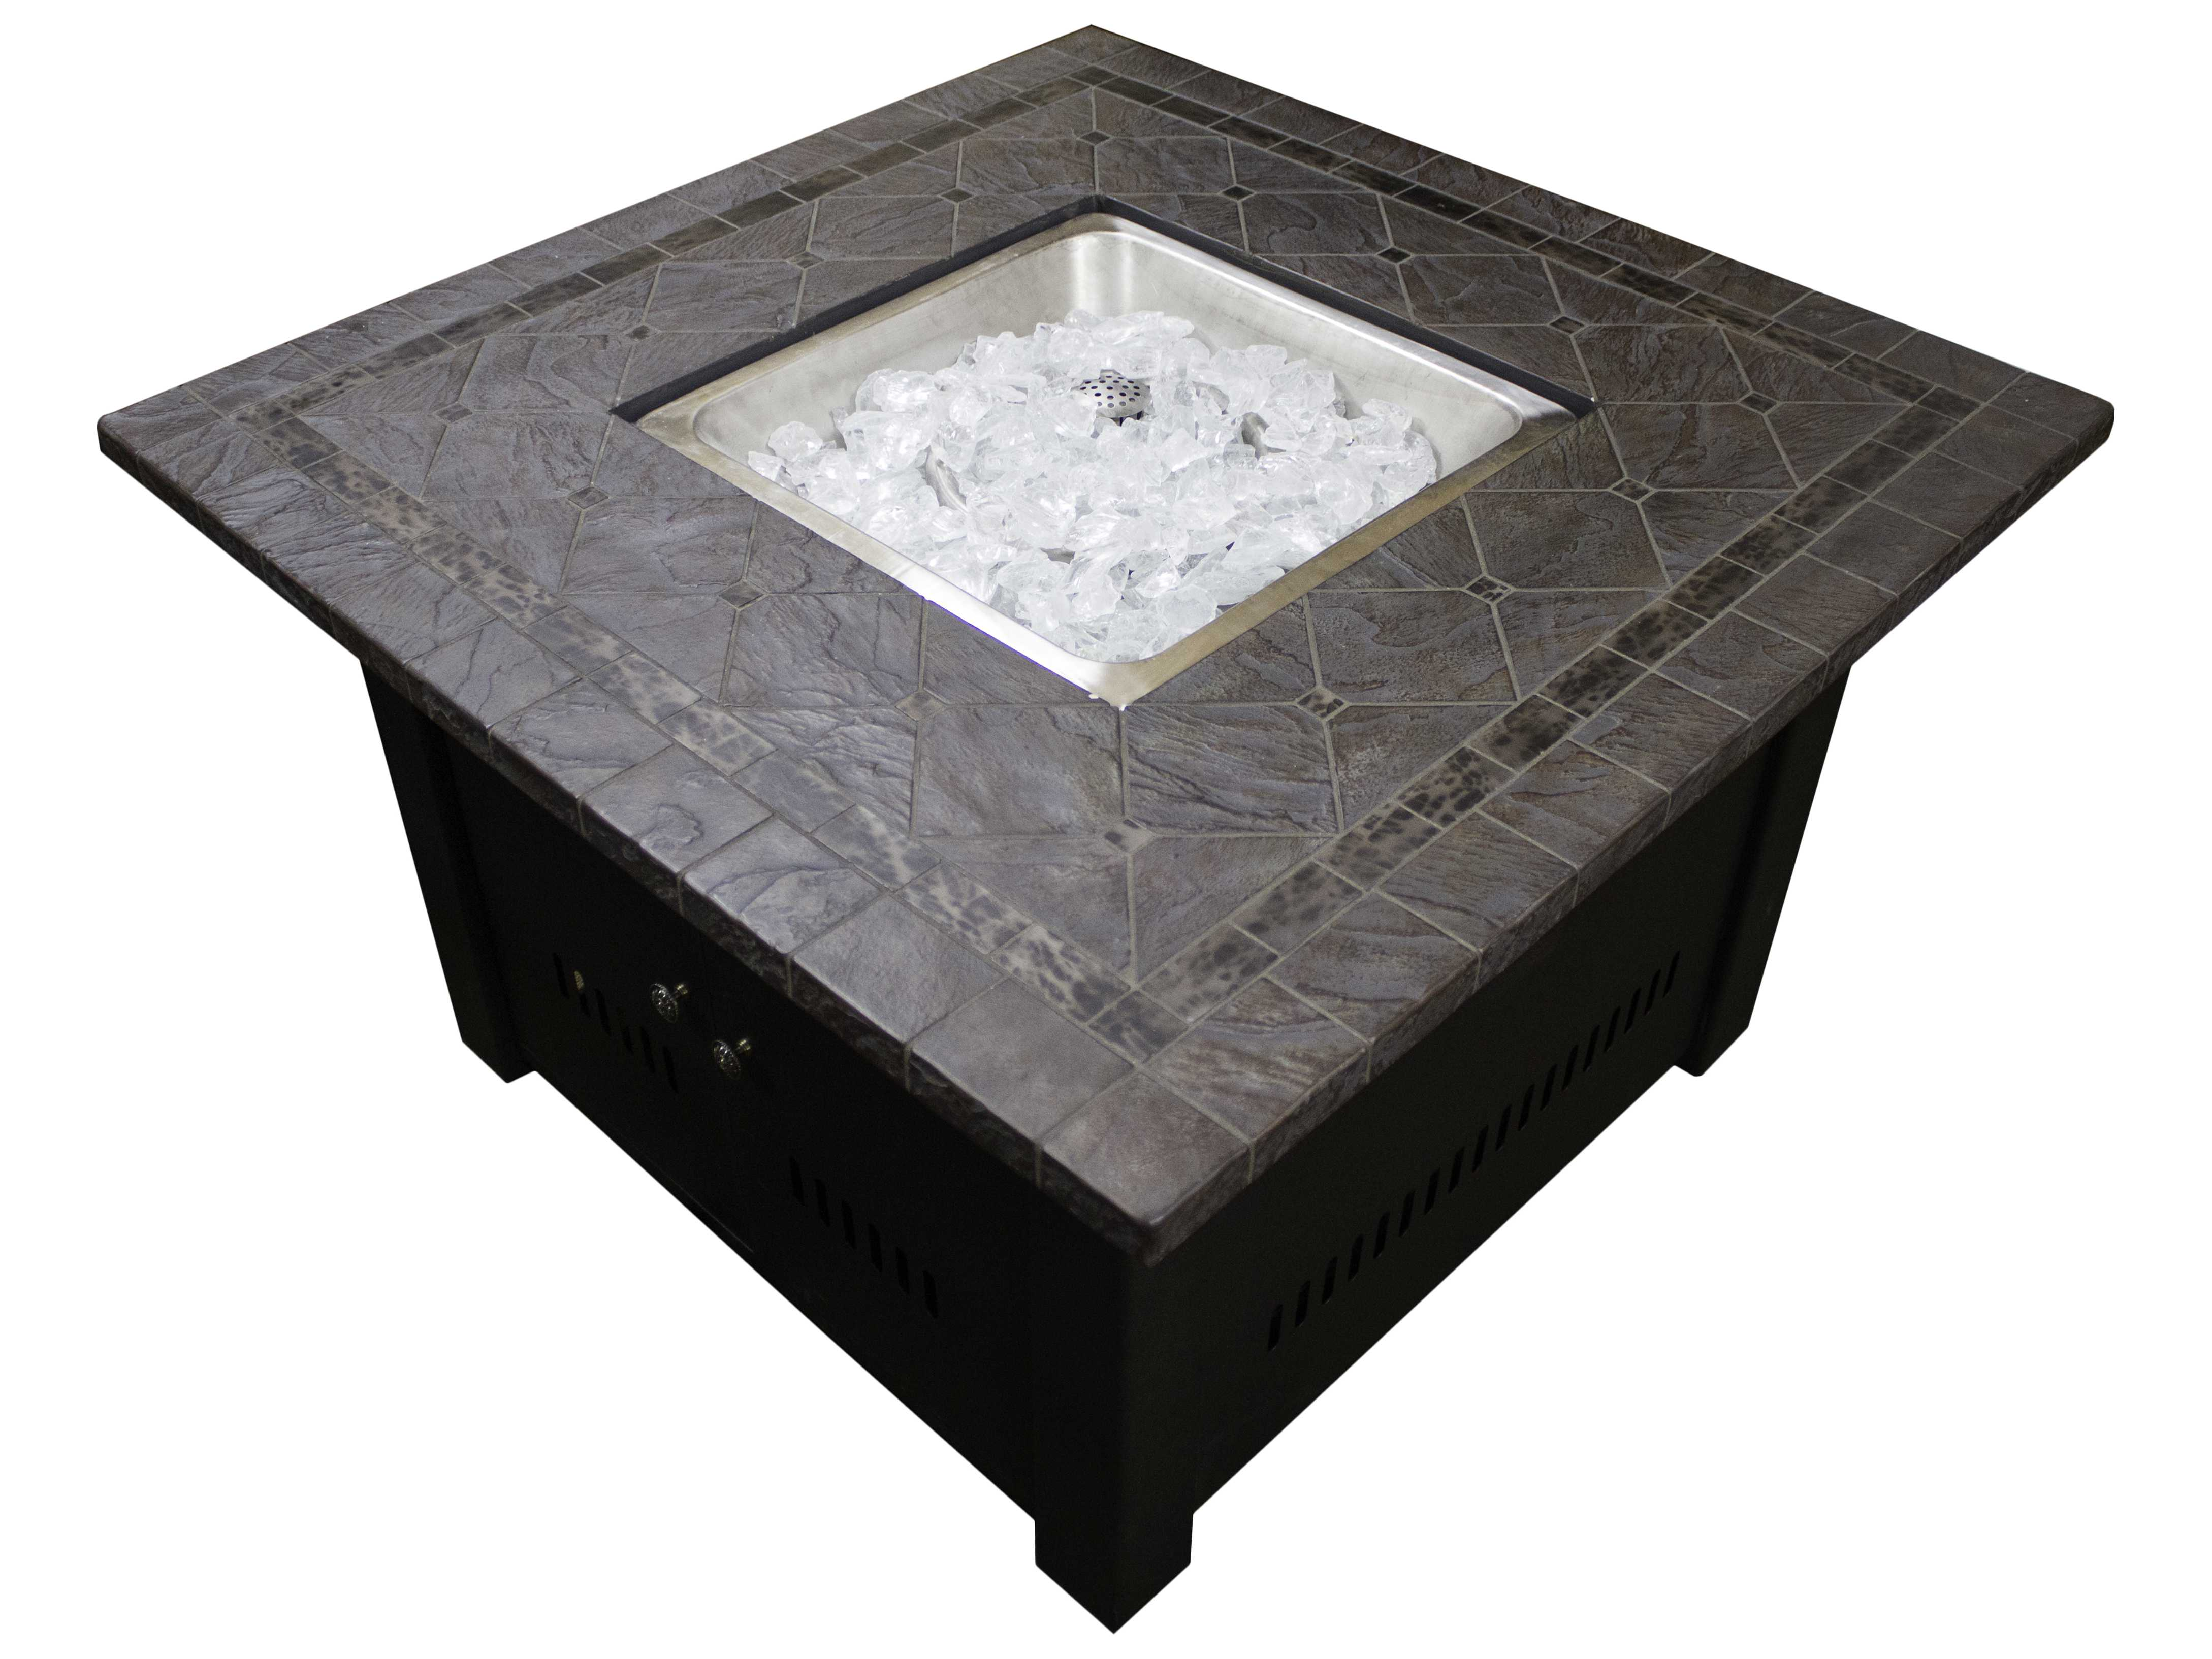 slate az ft pit iron wood burning to firepits top fire wrought heaters table hover zoom zm patio square firepit